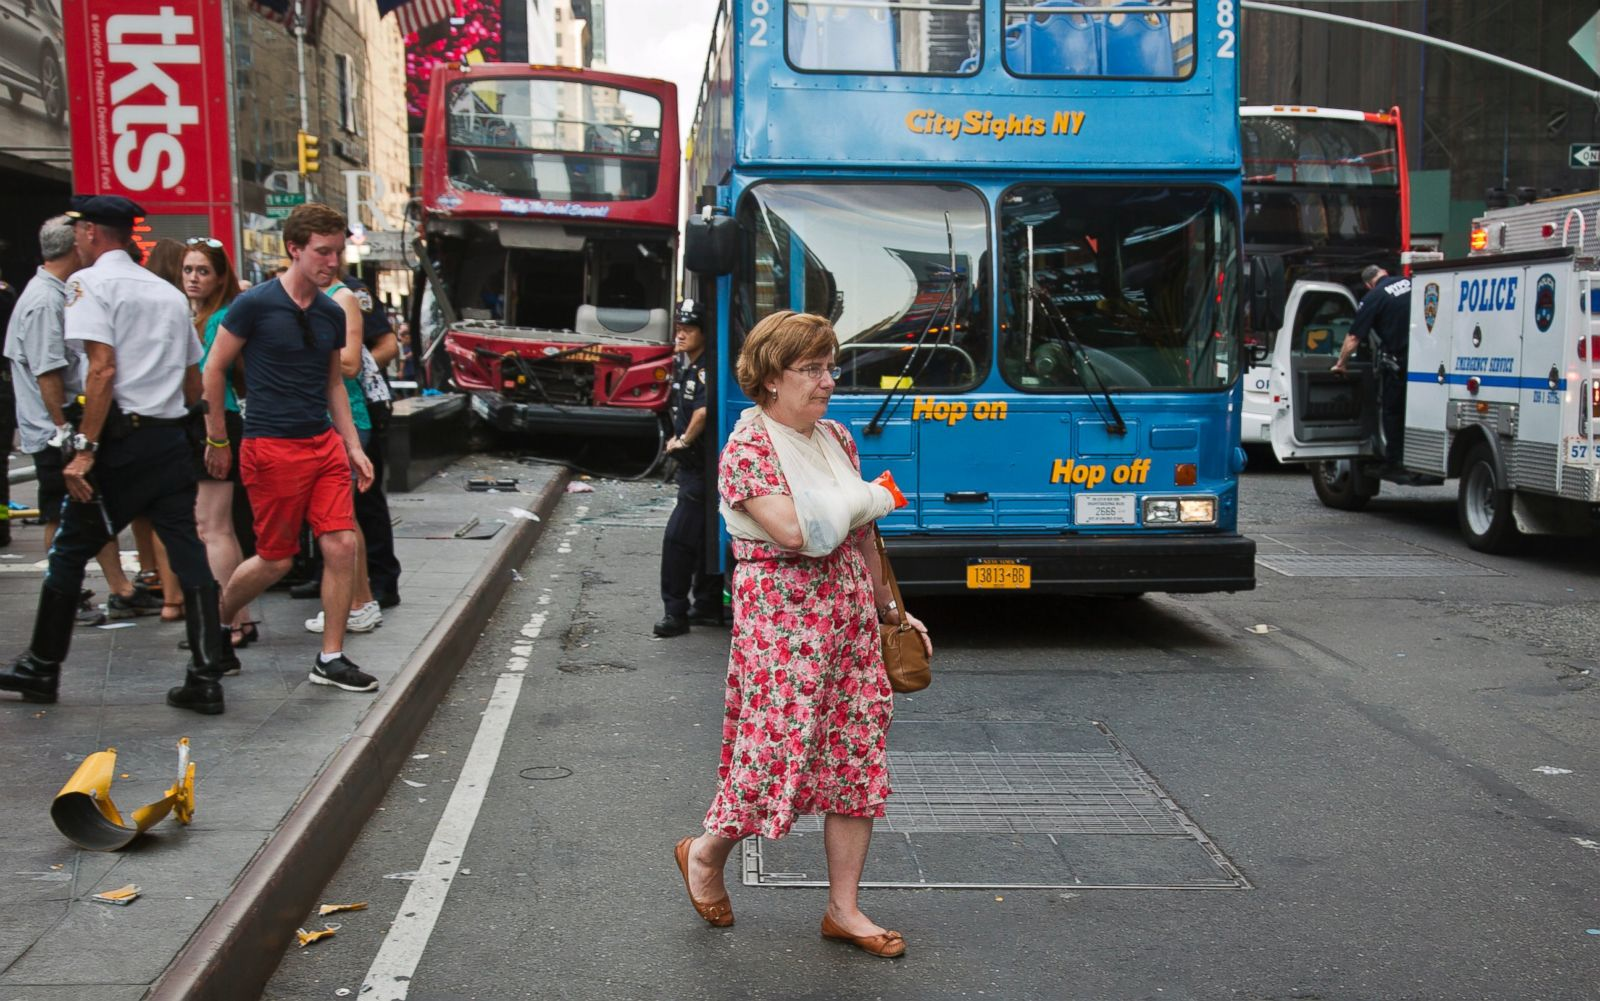 Office gay naked sword photo